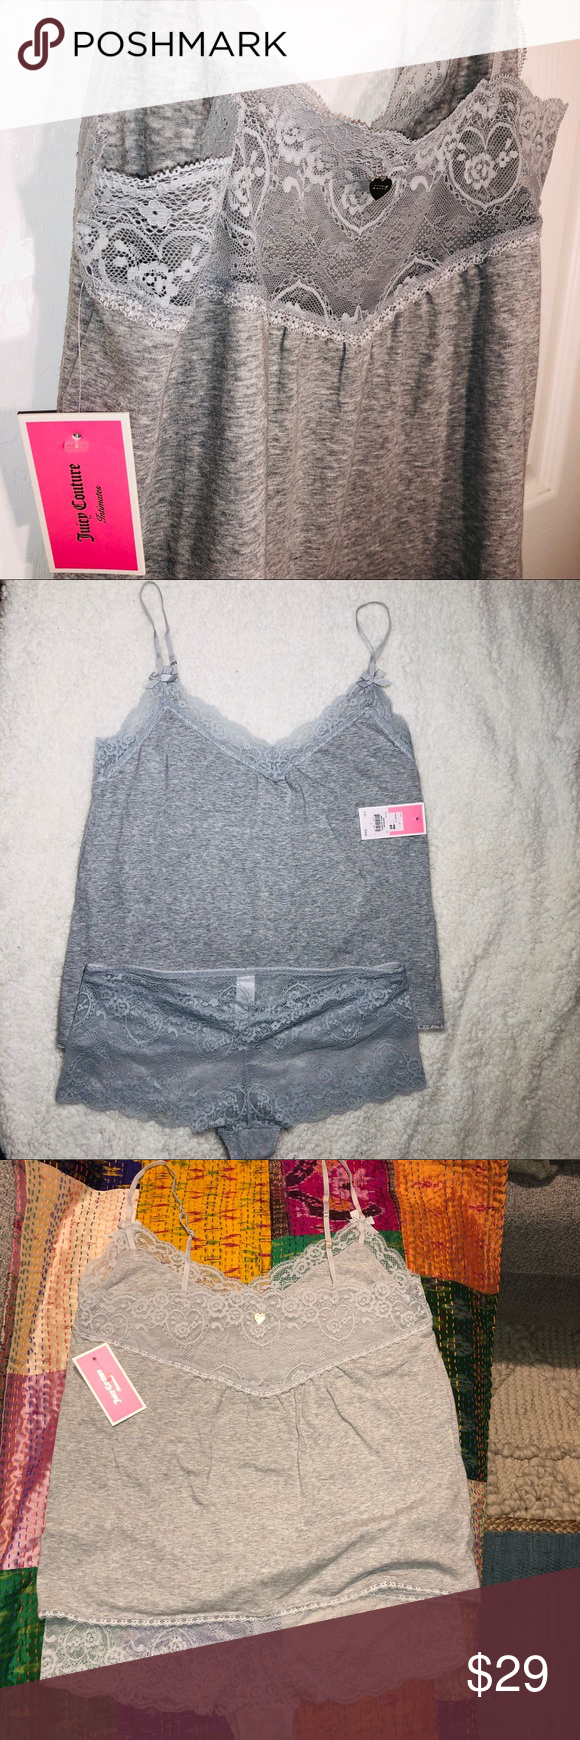 f837dcb80fb Juicy Couture gray camisole   undies set NWT. Bought and never worn. Sweet  and